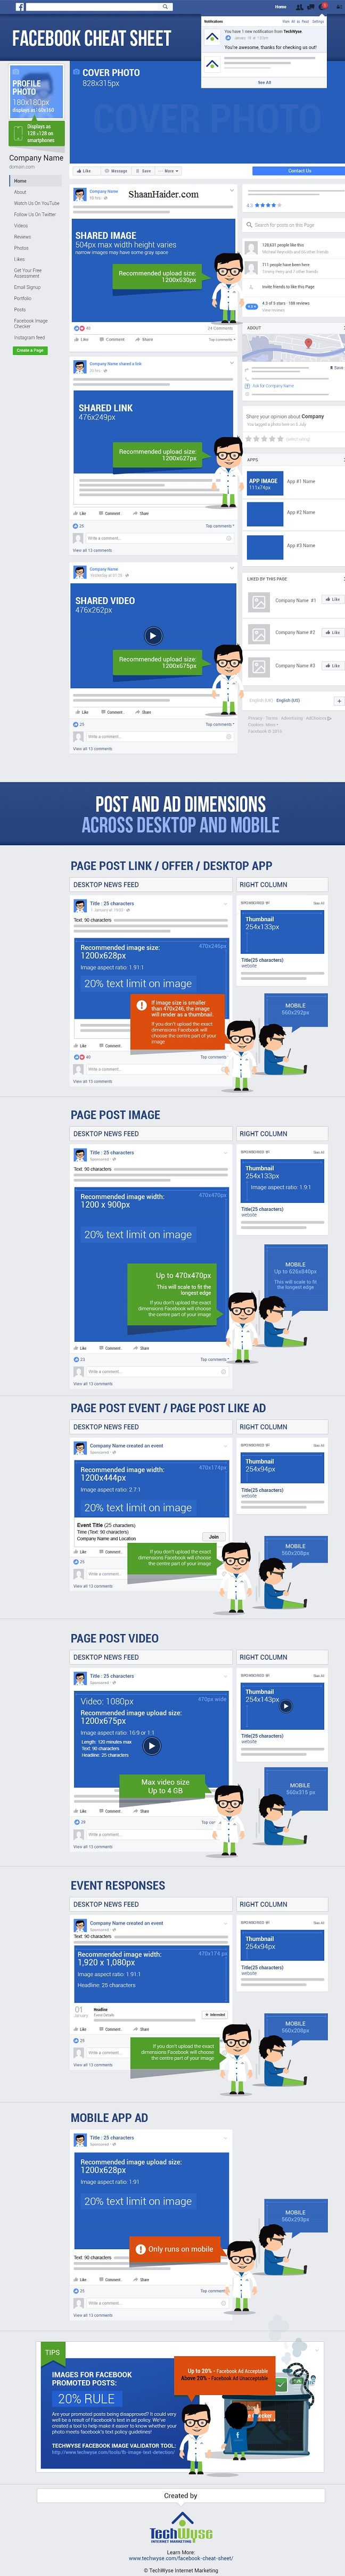 Facebook Image Size and Dimensions Cheat Sheet for 2017 (Infographic)